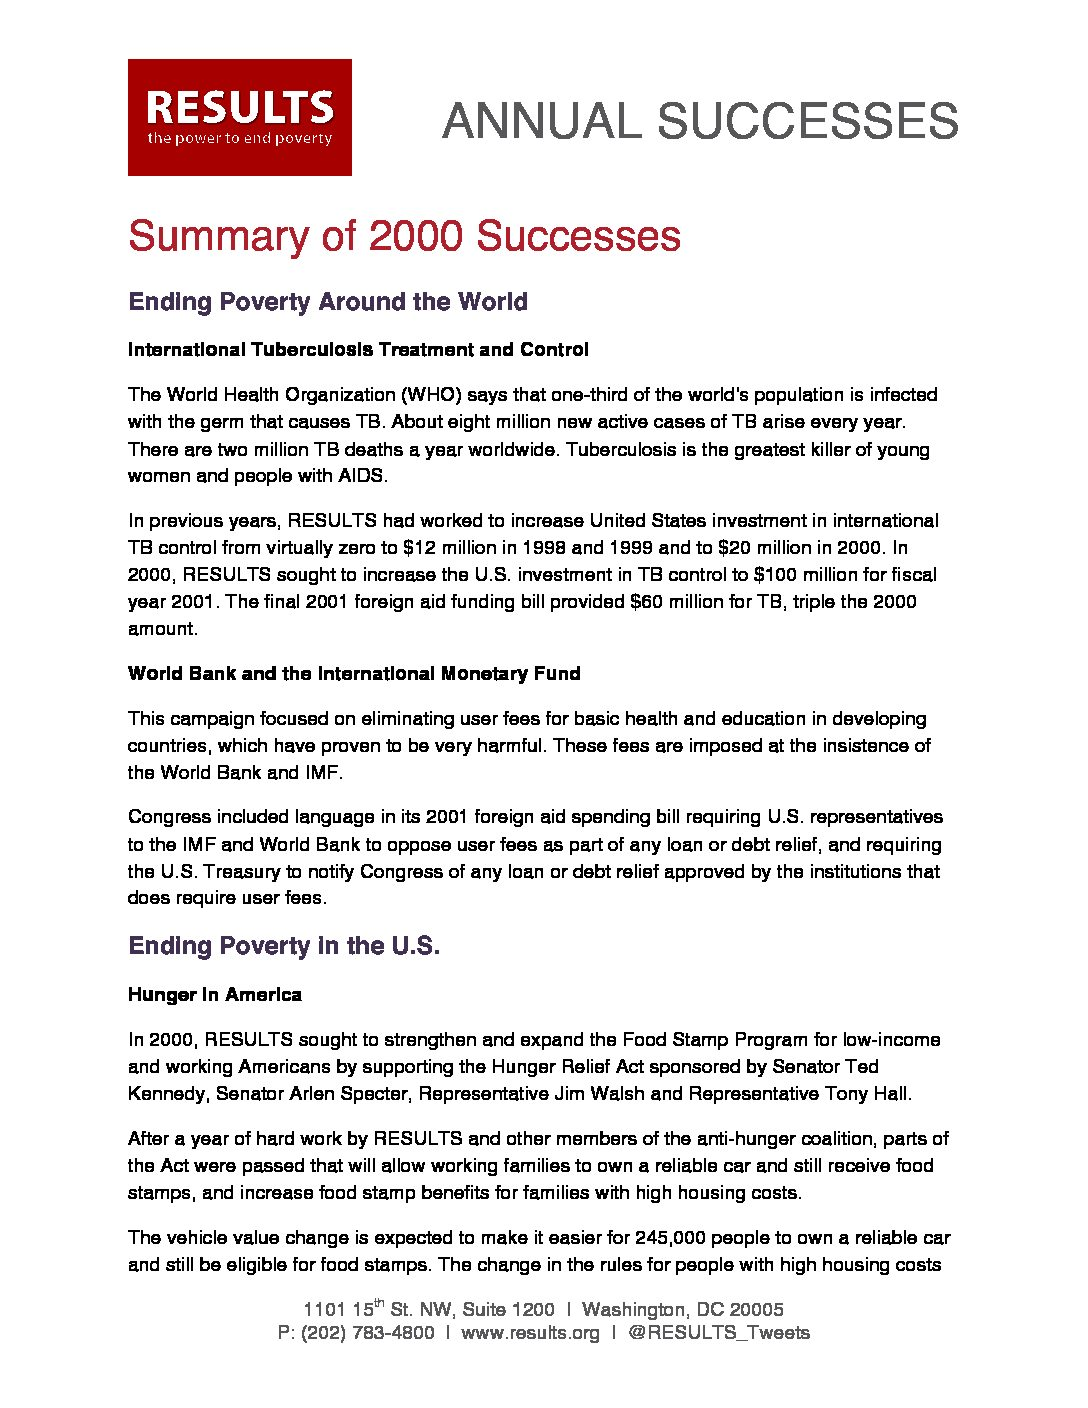 Annual Successes 2000